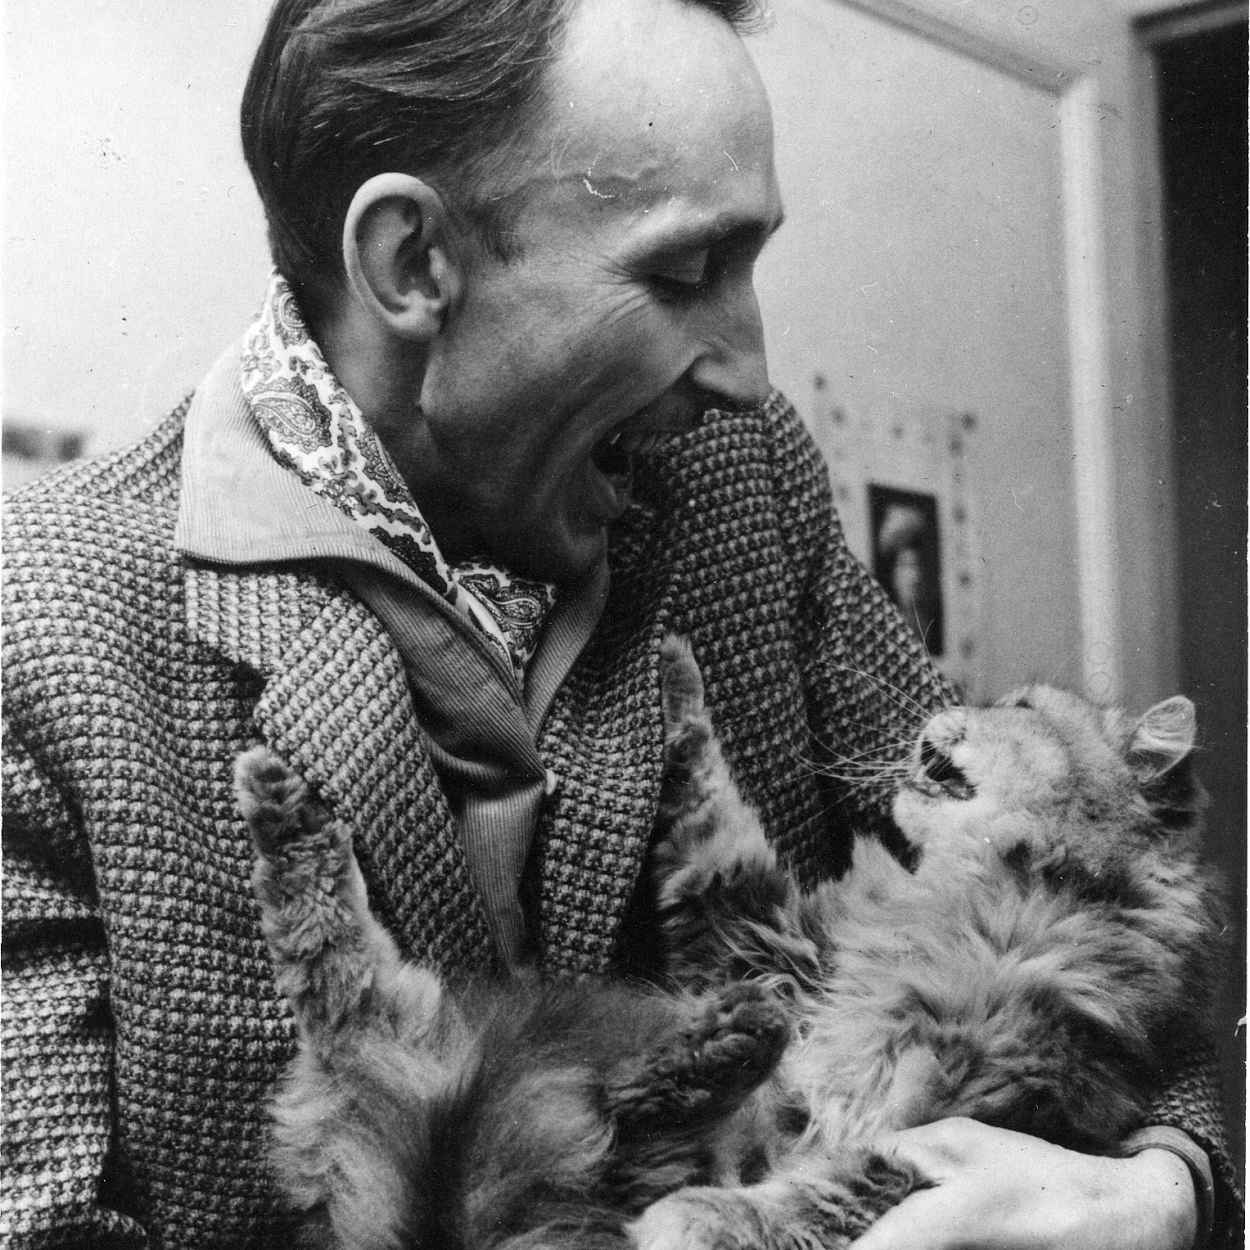 Portrait of Andre Bazin with cat